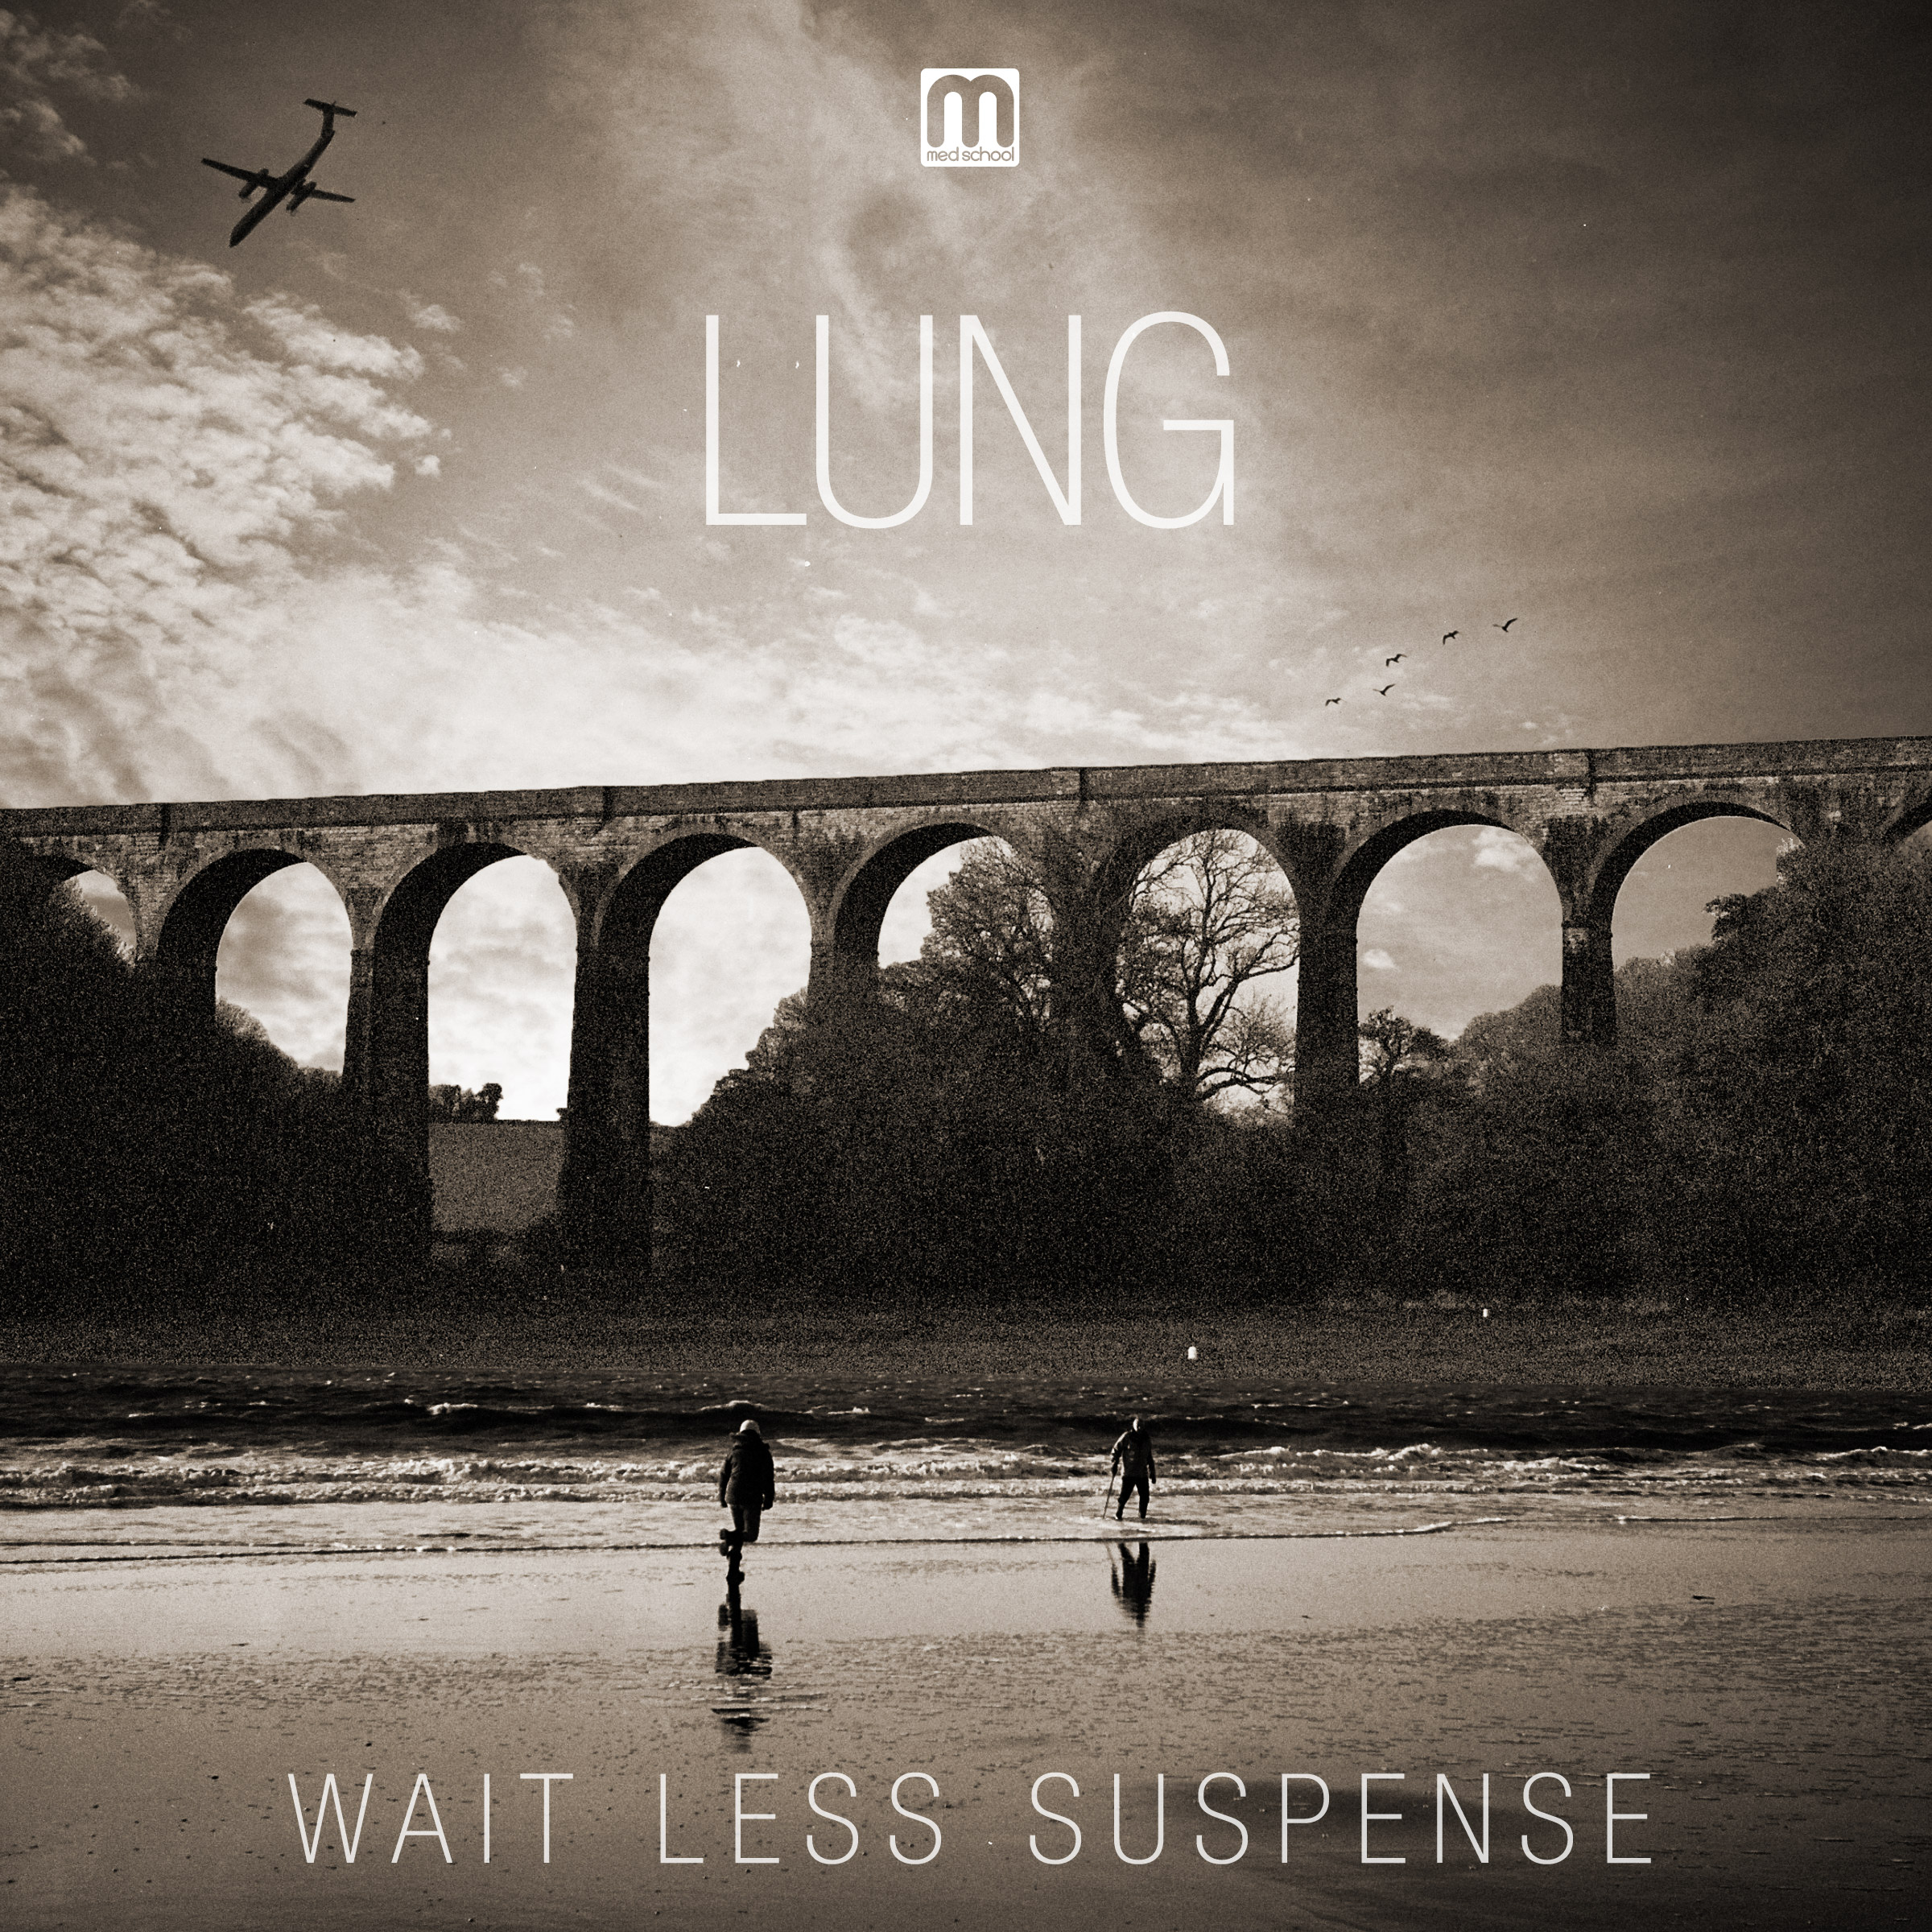 Lung/WAIT LESS SUSPENSE CD